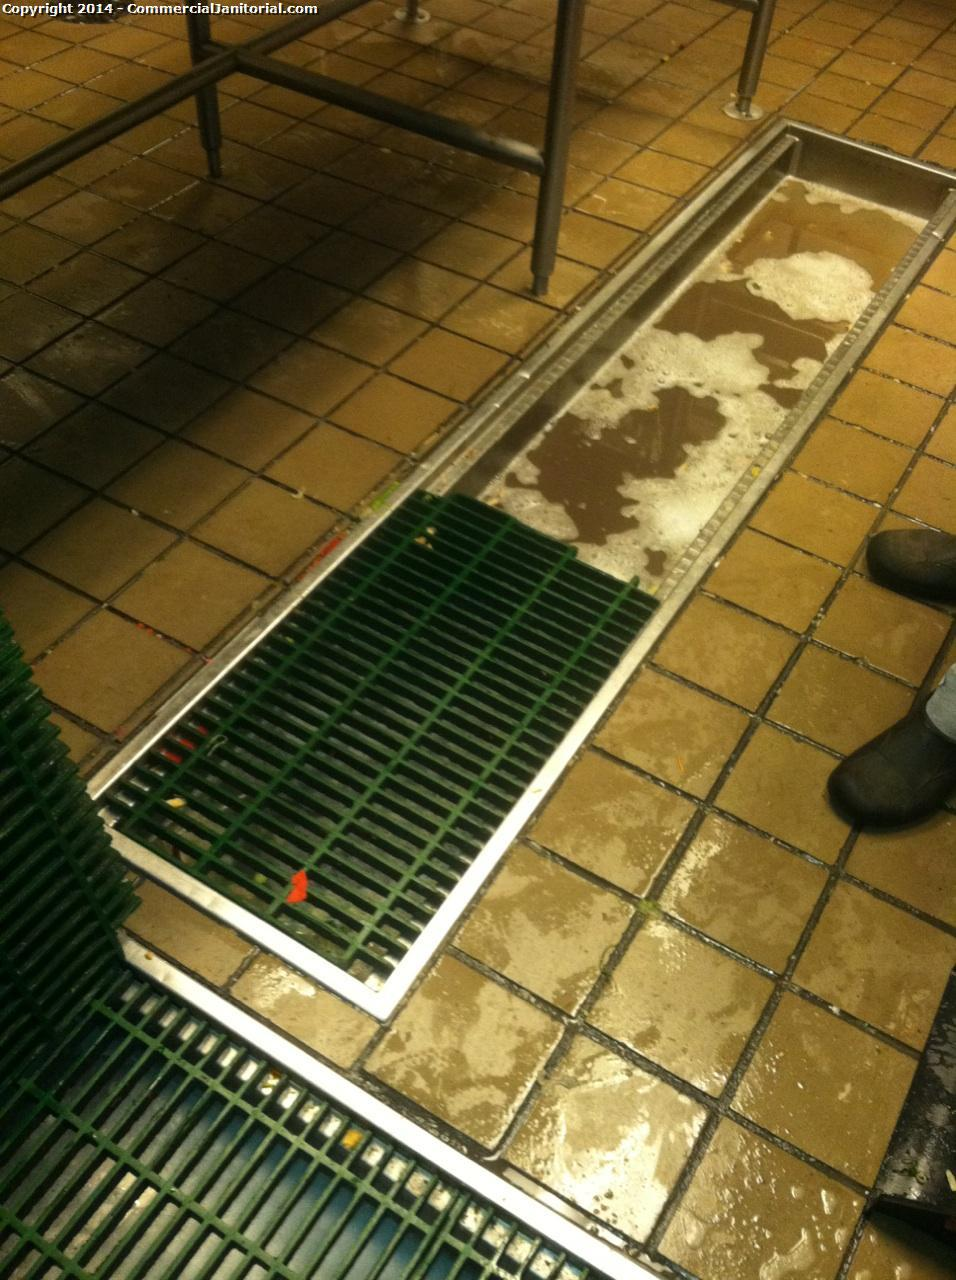 Clogged drains when cleaning restaurant floors image